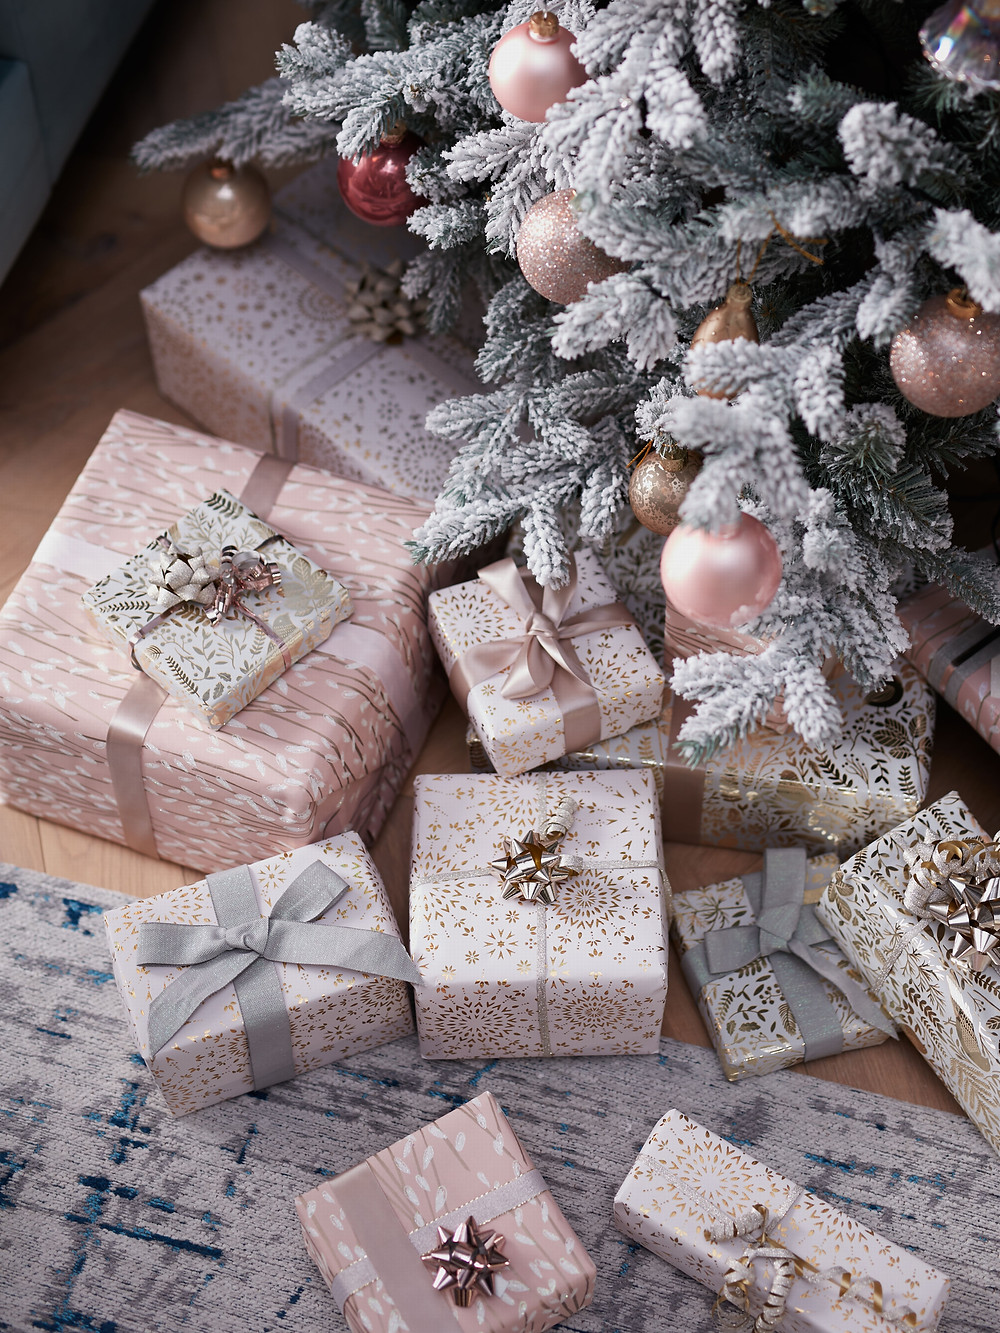 Pink Christmas presents under the Christmas tree